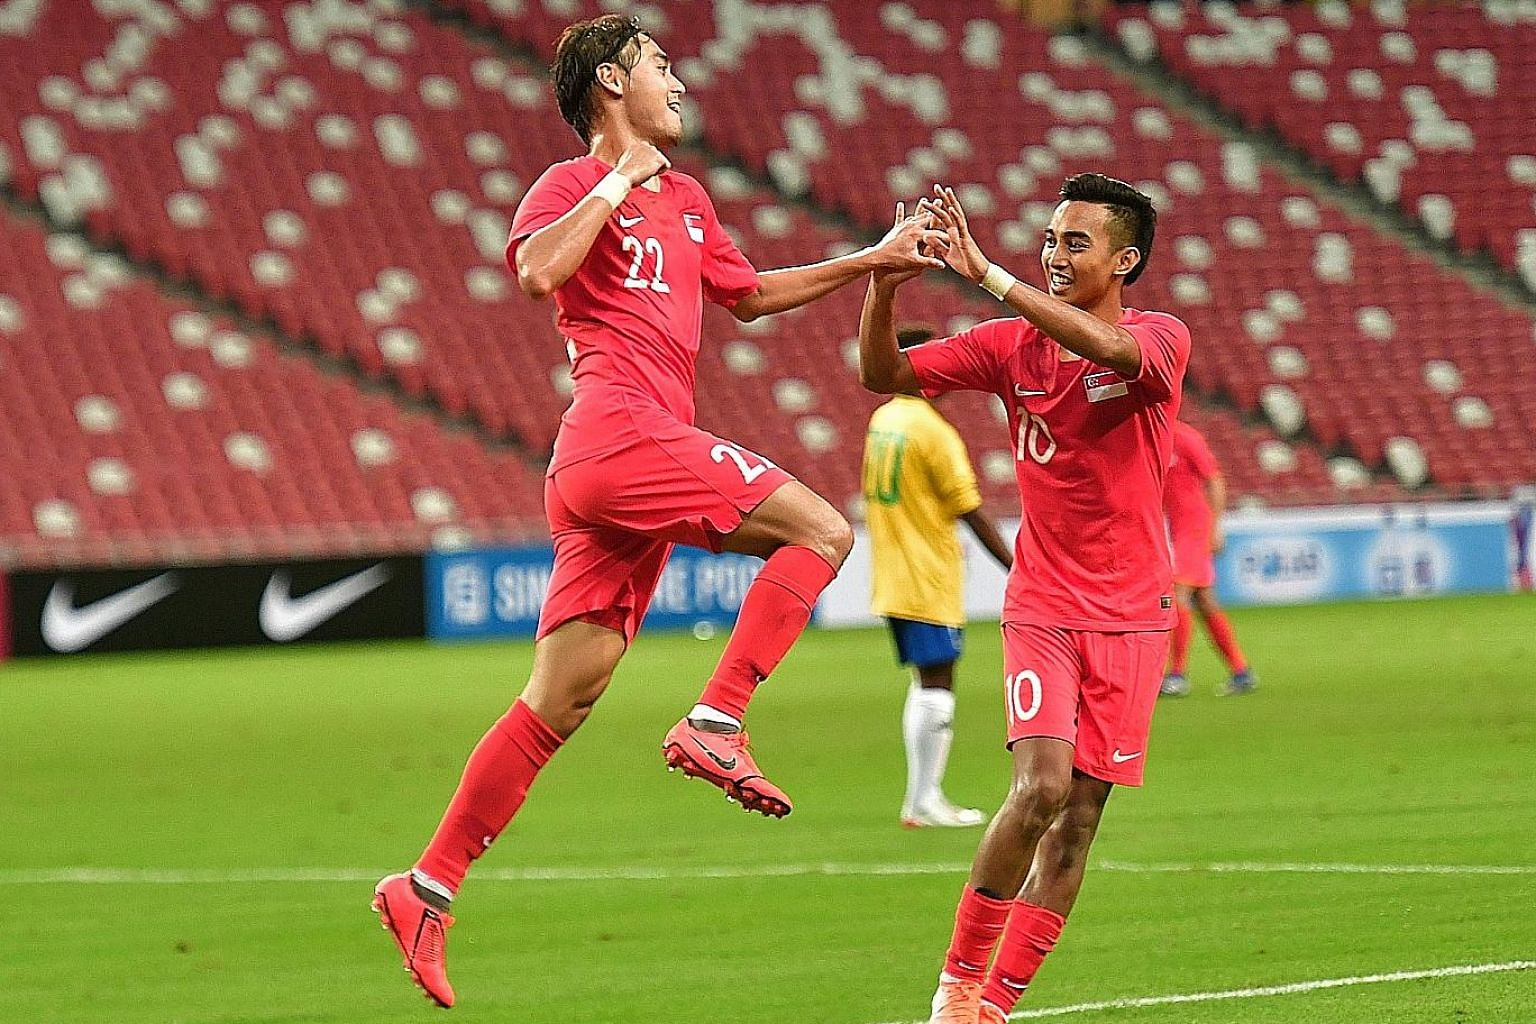 Singapore forward Gabriel Quak celebrating with Faris Ramli after he scored the Lions' third goal against the Solomon Islands in the friendly match at the National Stadium last night. Faris had scored the first goal in the fourth minute.